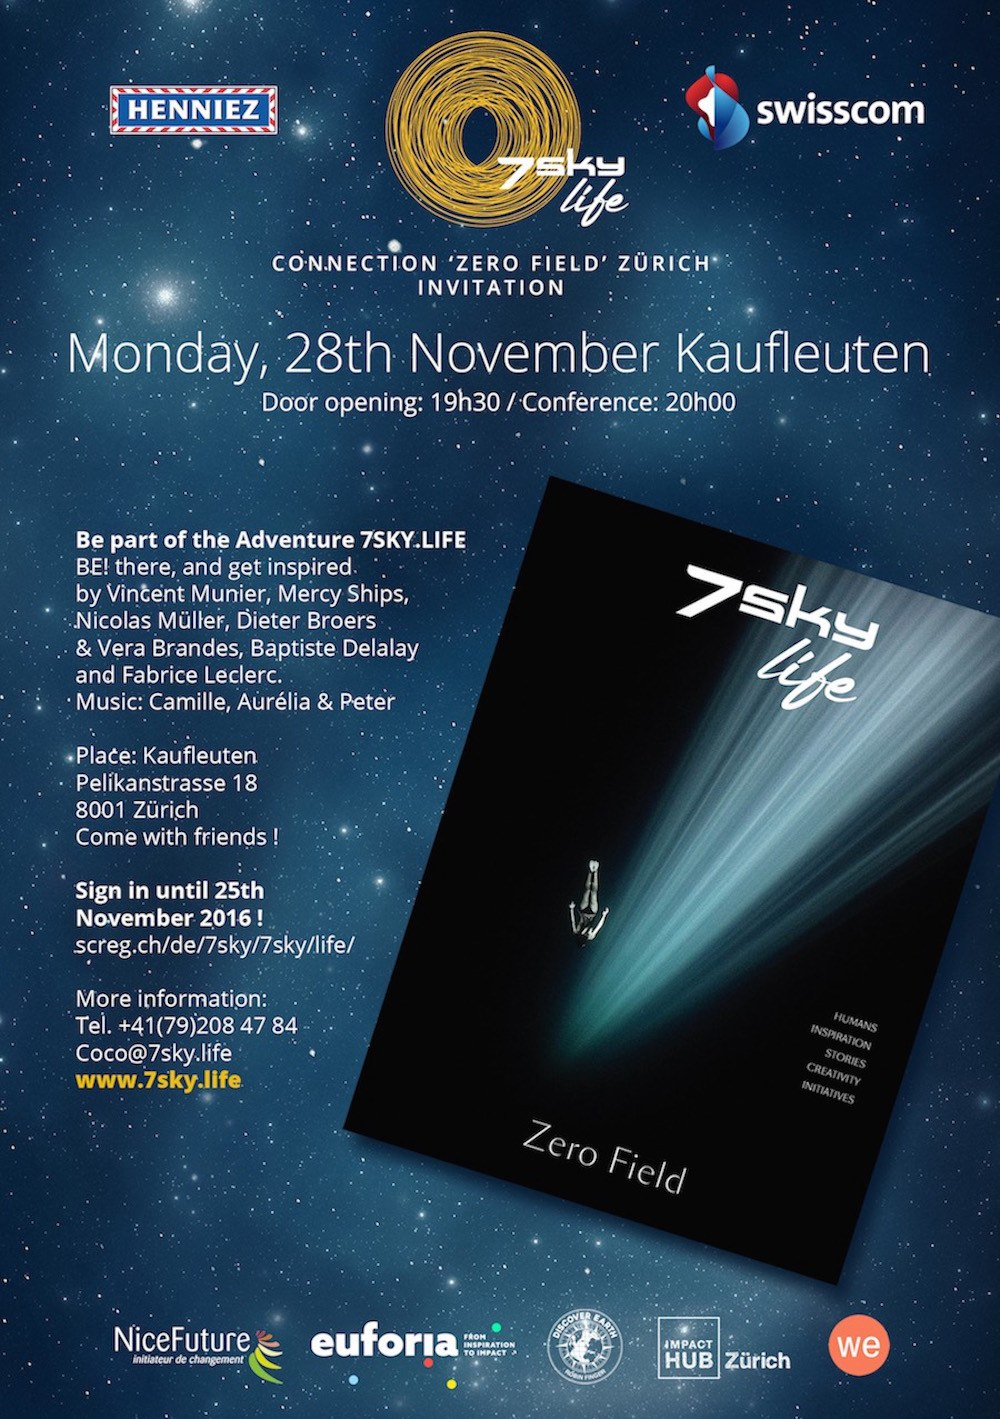 7sky.life Connection 'Zero Field' au Kaufleuten Zurich, le 28 novembre 16